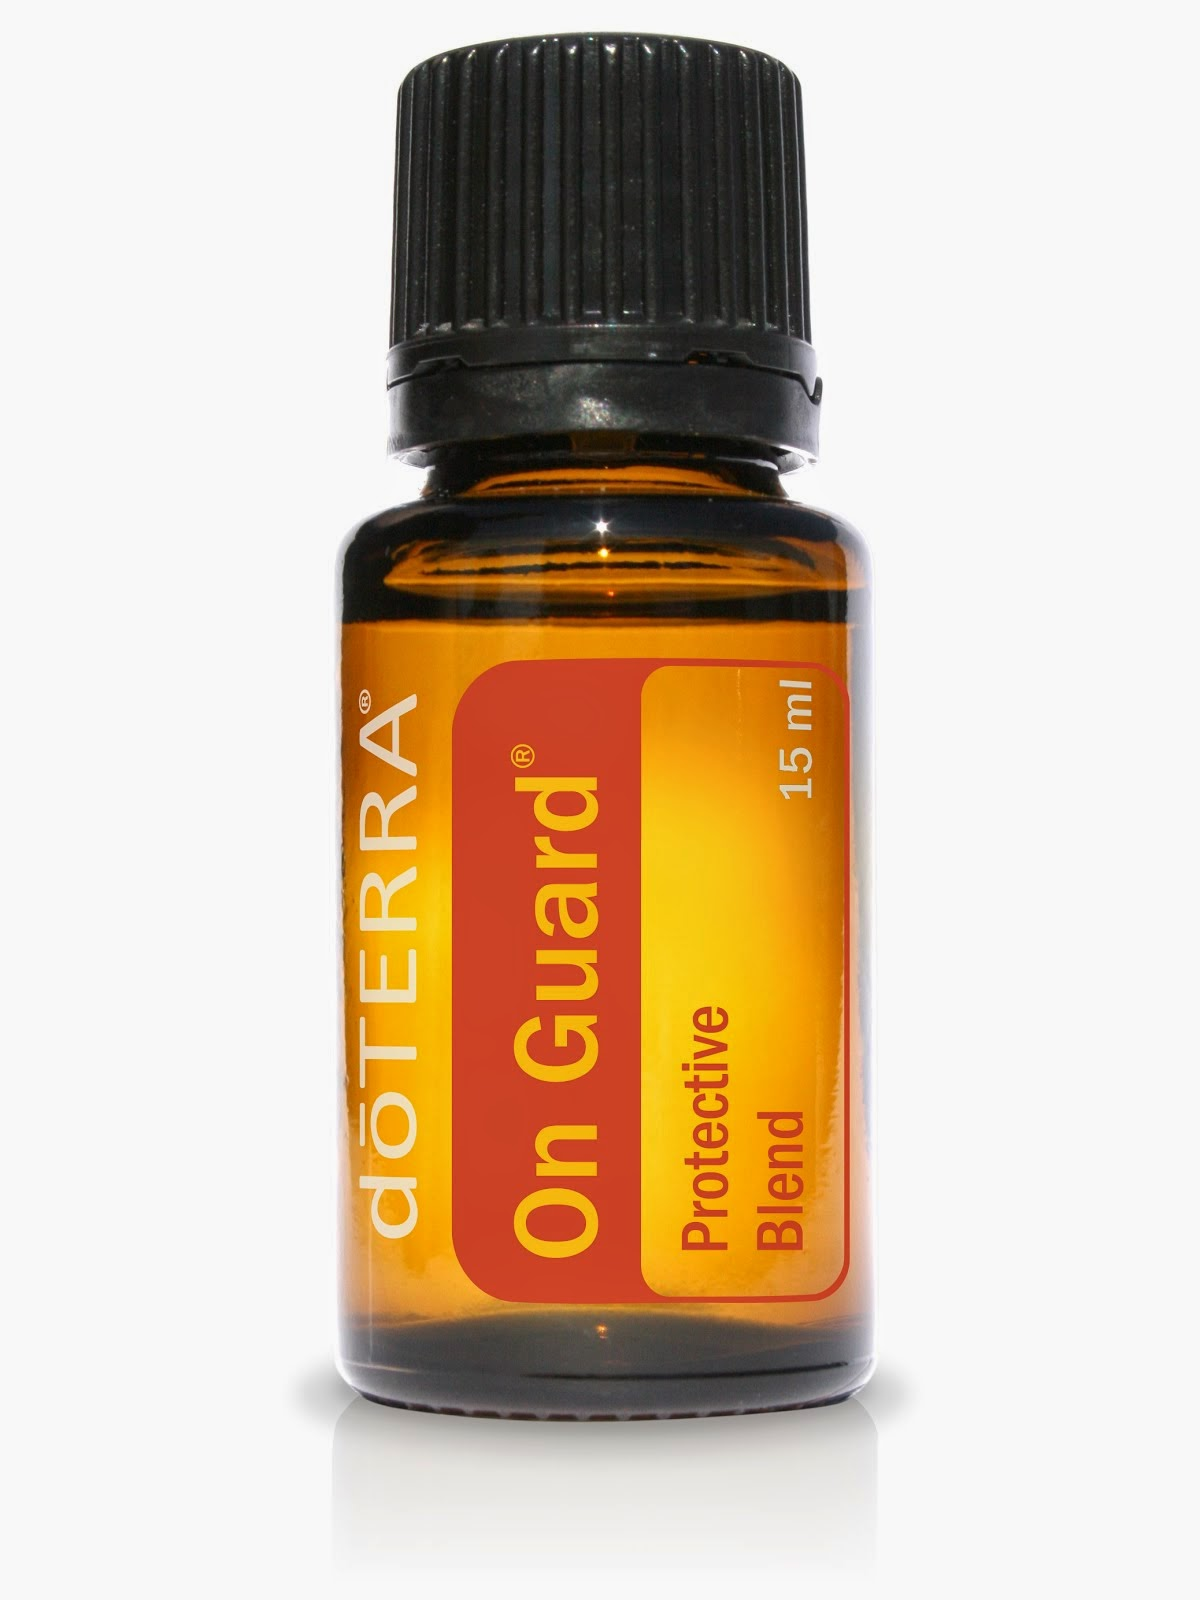 OnGuard Oil Blend - One of my favorite oils!